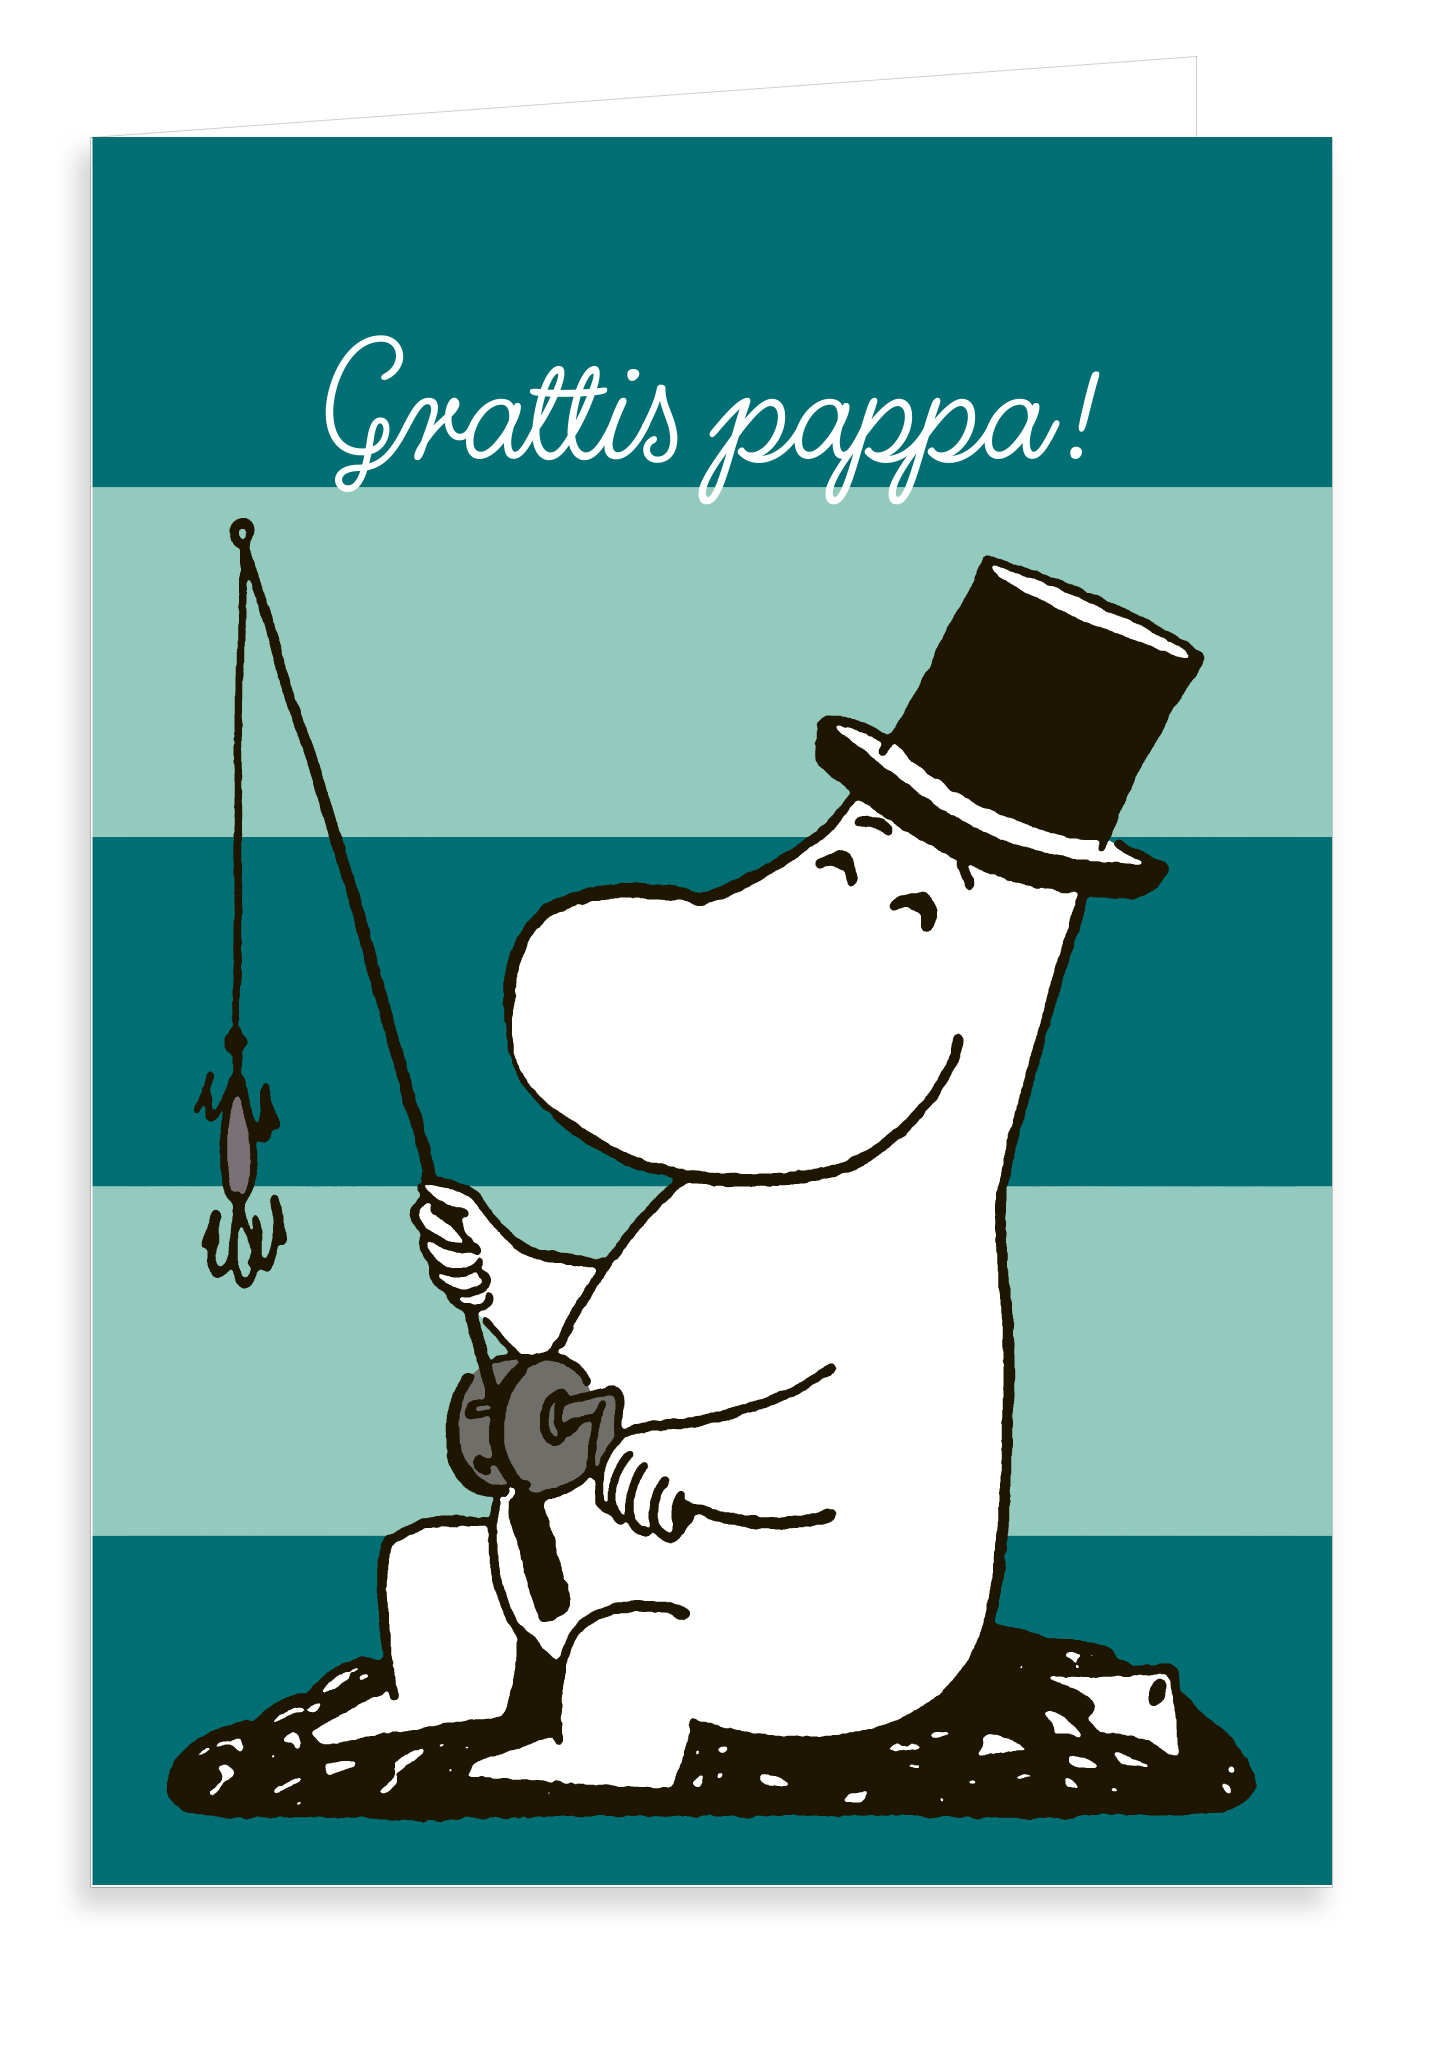 Putinki Greeting Card Father's Day Grattis pappa!